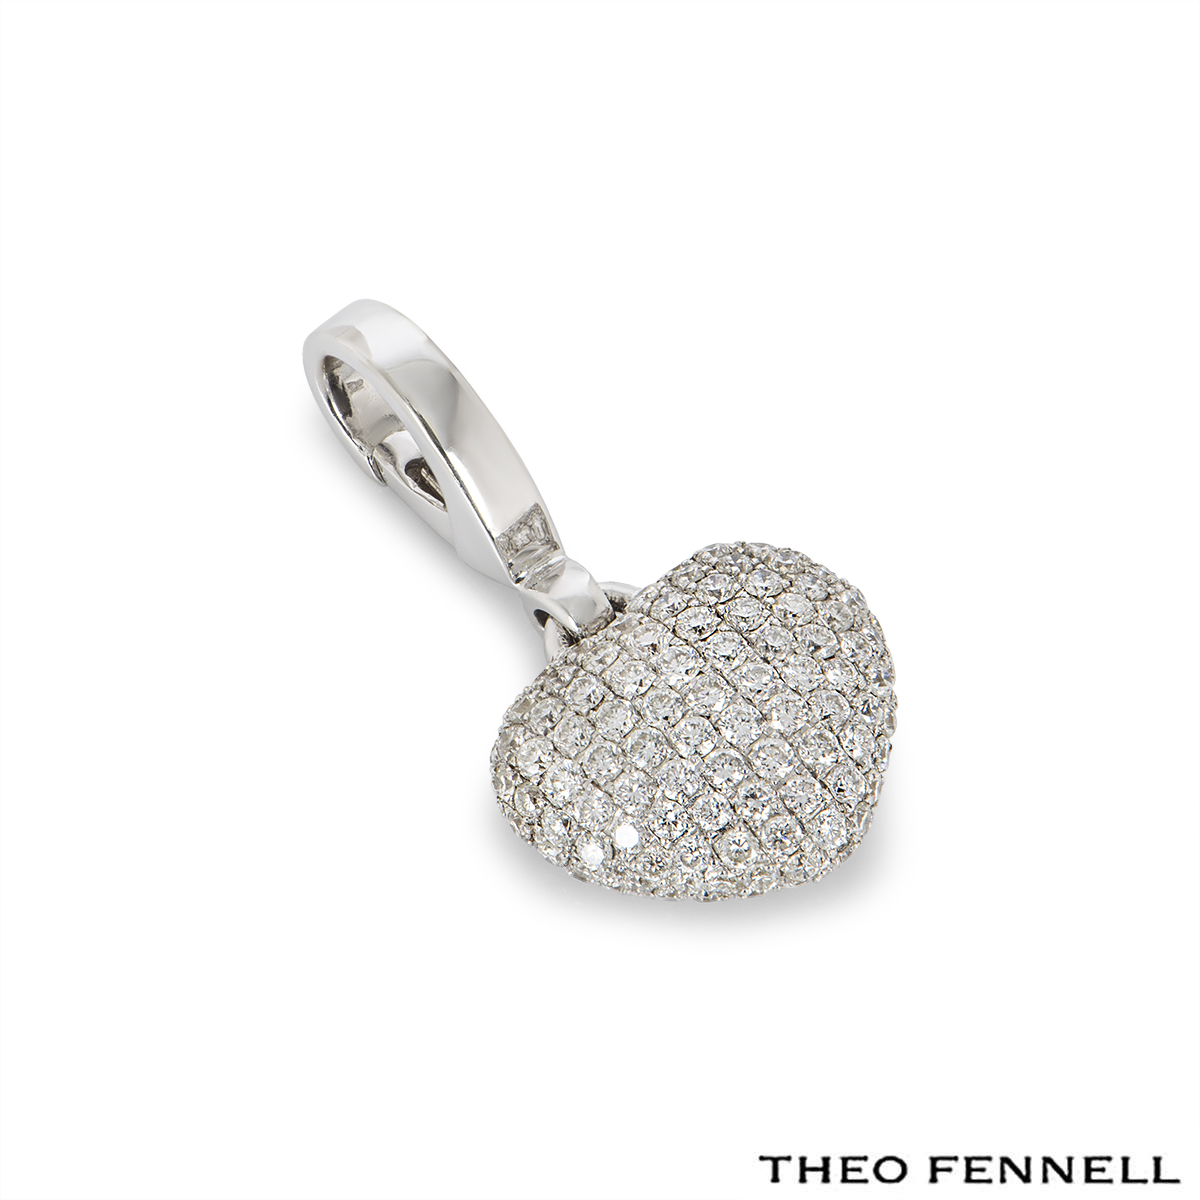 Theo Fennell White Gold Diamond Heart Charm